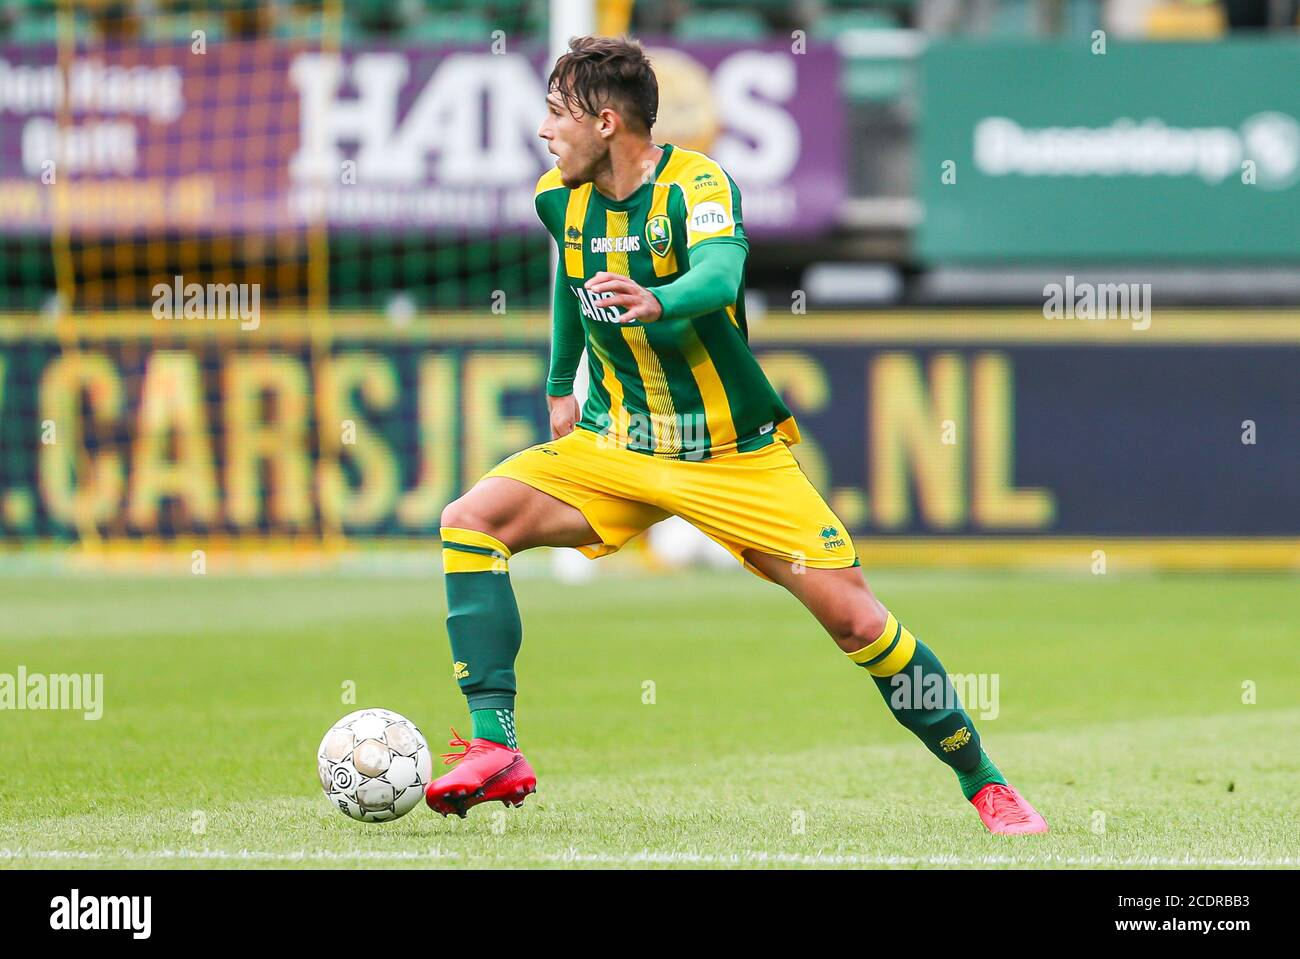 Rotterdam 29 8 20 Cars Jeans Stadion Pre Season 20 21 Ado Den Haag Az Ado Player Andrei Ratiu Credit Pro Shots Alamy Live News Stock Photo Alamy